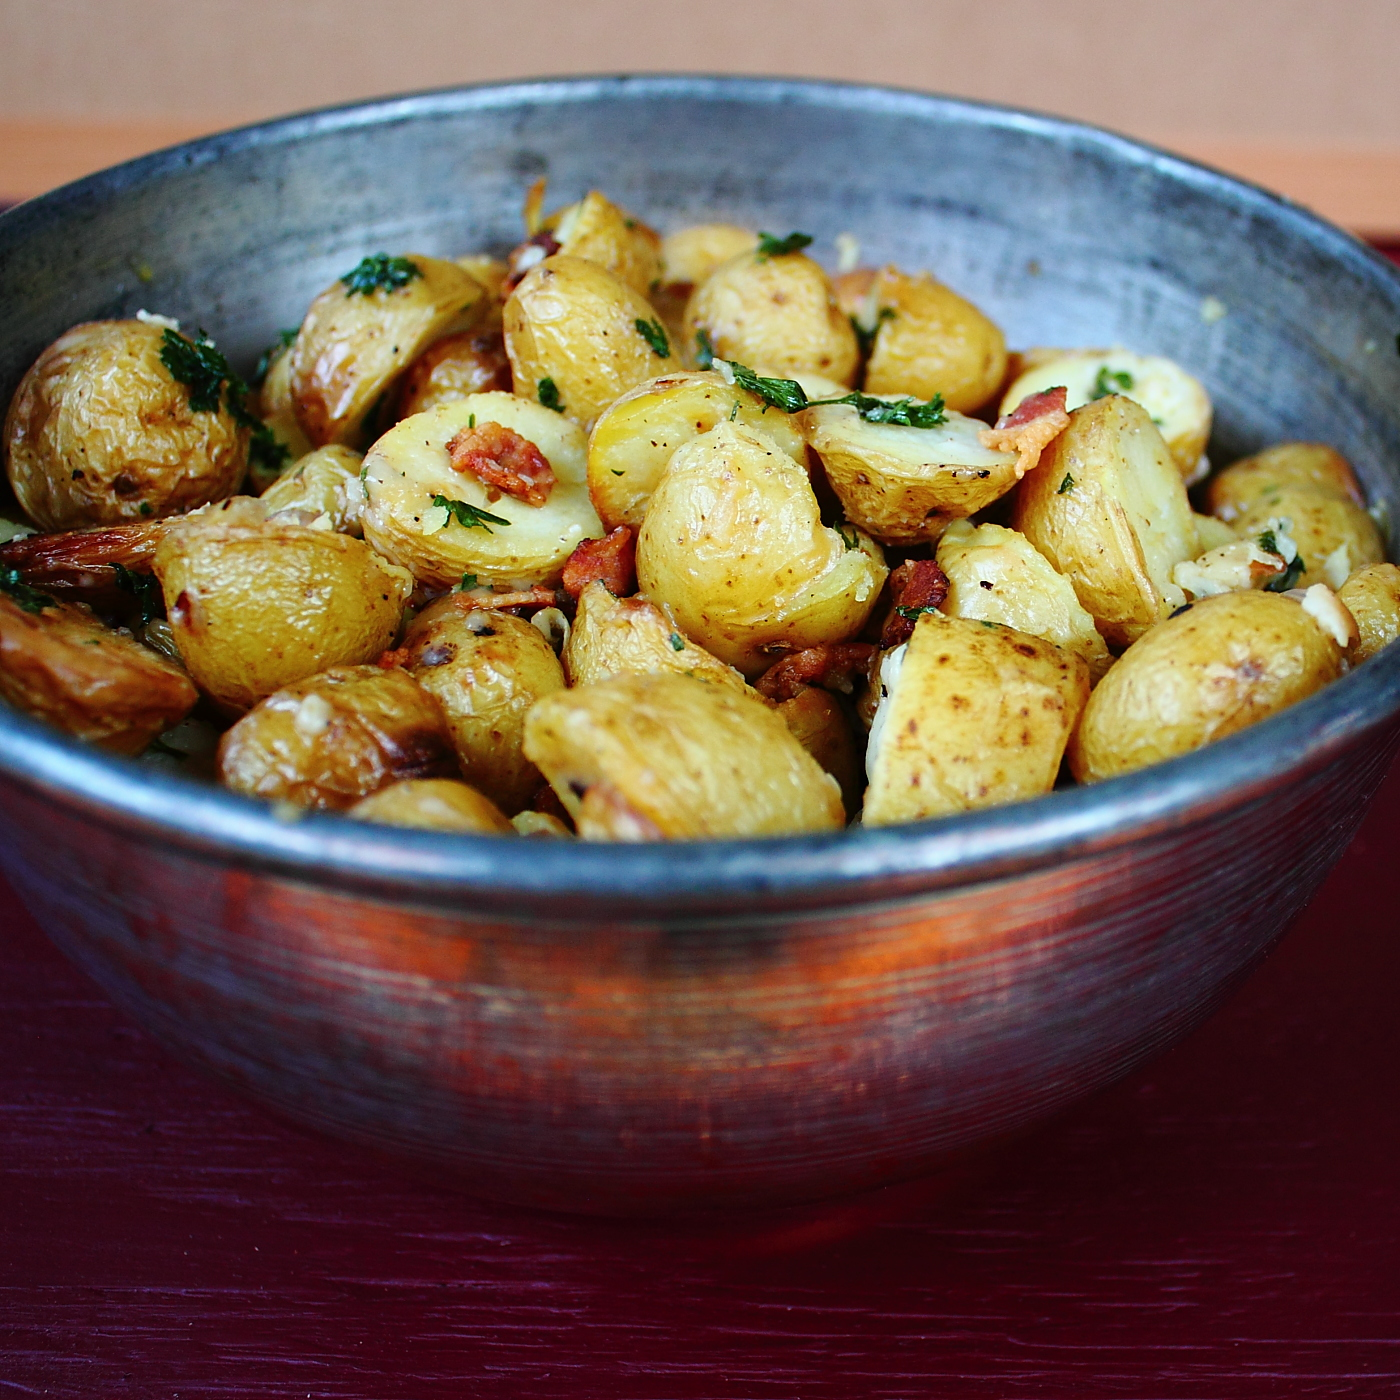 ... the Cody Kitchen: Roasted Potatoes with Parsley, Parmesan and Bacon